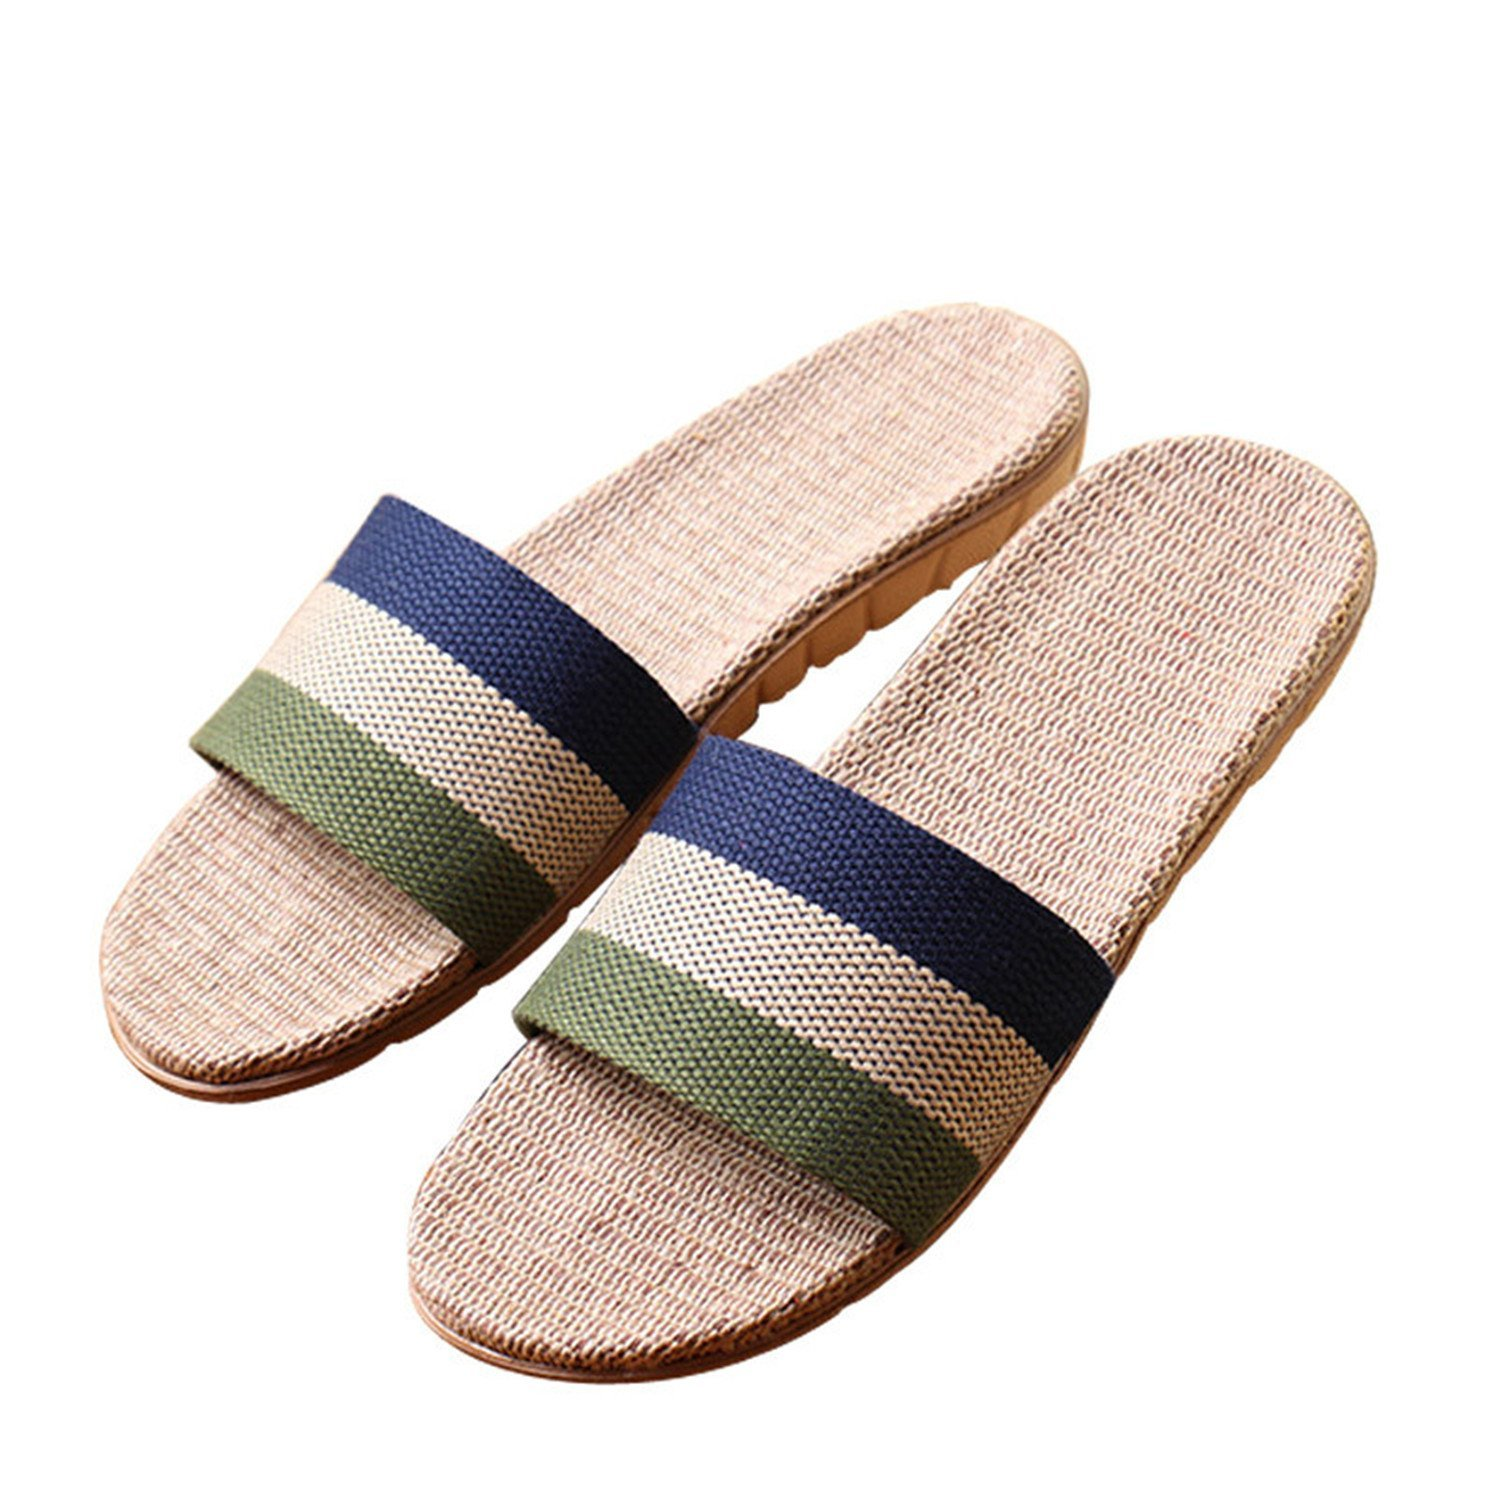 96a80a35b5 Cheap Name Brand Slippers, find Name Brand Slippers deals on line at ...